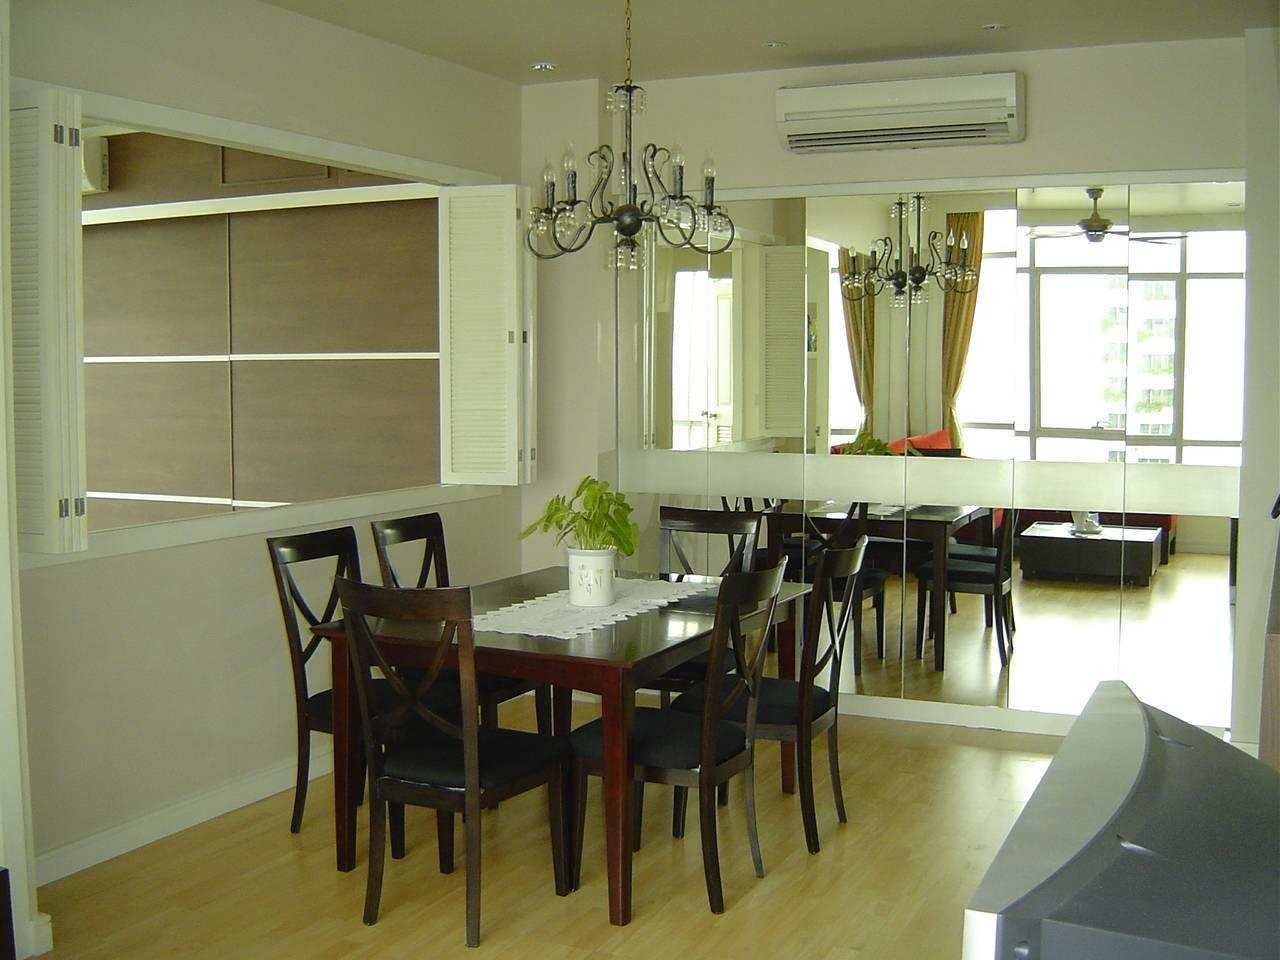 Quality Life Property Agency's For Rent Condo Baan Chao Praya Sathorn 1 Bedroom 1 Bath High Floor Top View 3